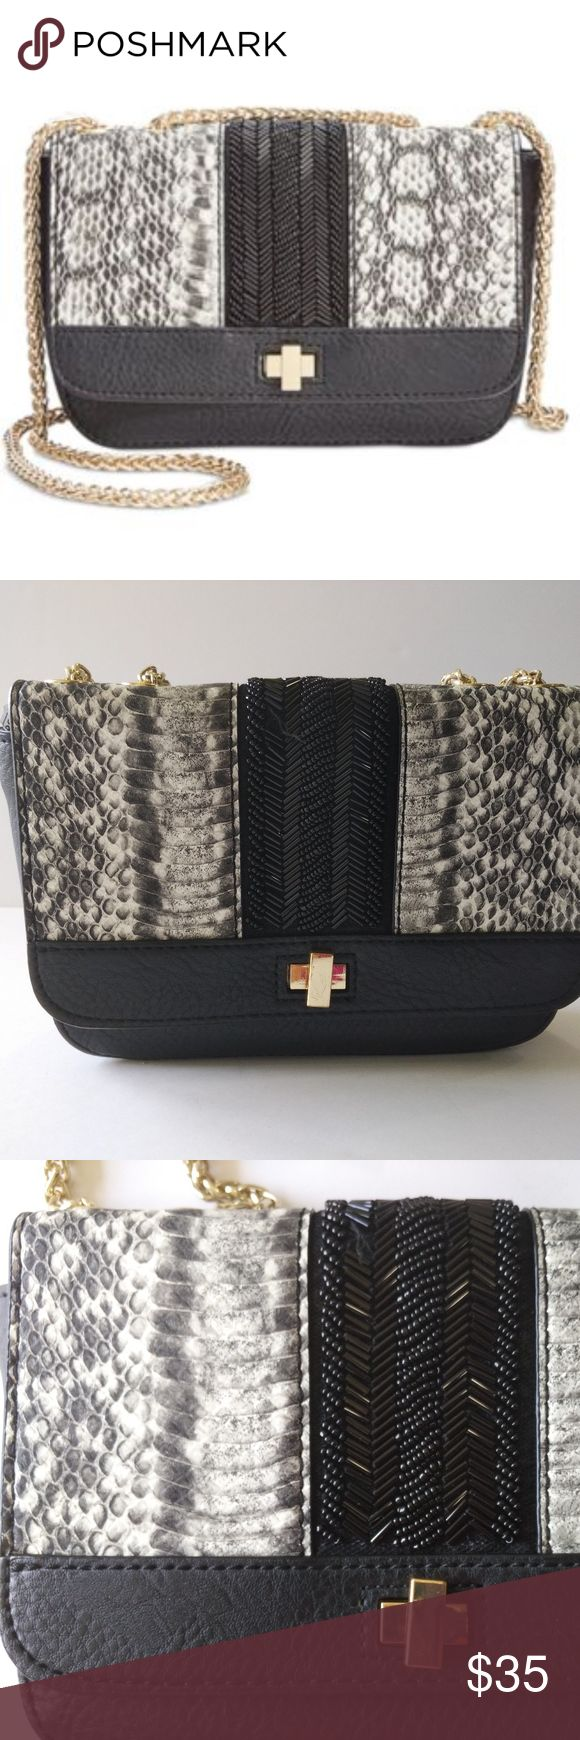 """NWT International Concepts Mariin Crossbody Black Be the envy of the event with INC International Concepts' stunning faux-leather crossbody, appointed with a sumptuous mix of beaded and metallic chain details.  7-5/8""""W x 4-7/8""""H x 2-1/8""""D Interior features lining and 1 slip pocket; fits an iPhone 6 plus or smaller 23""""L adjustable crossbody chain strap Turn-lock closure Exterior features gold-tone hardware and beaded embellishment Faux leather Some beads missing, photo shows INC International…"""